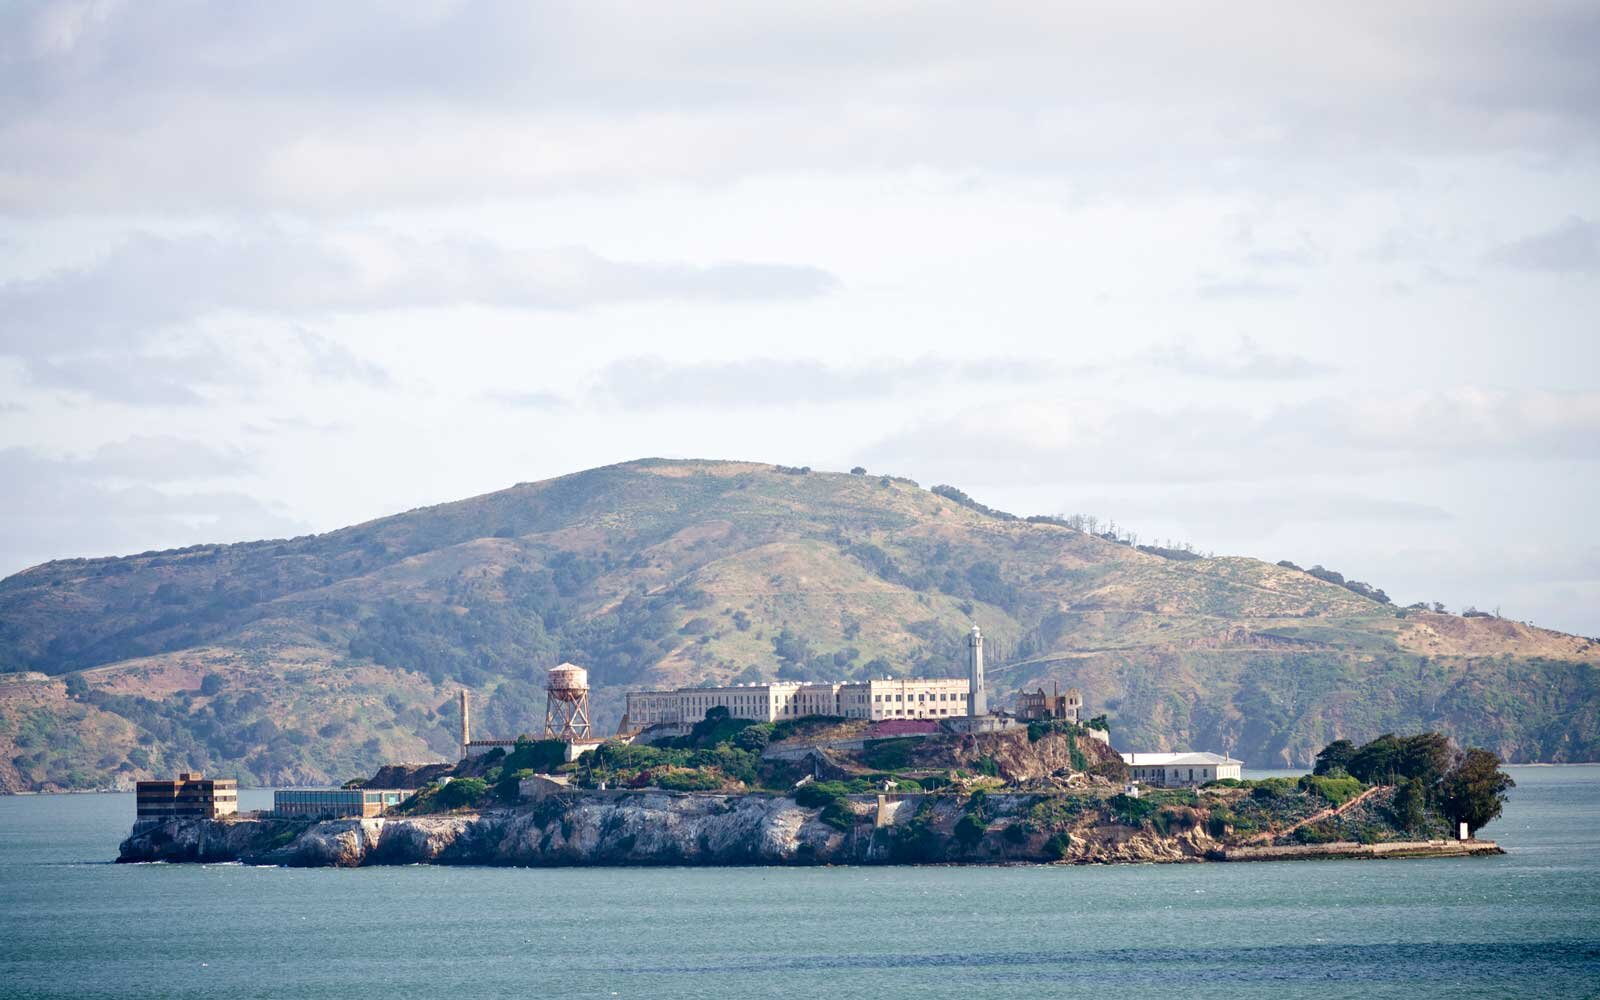 Travelers To Alcatraz Island Now Have The Option To Visit A Second